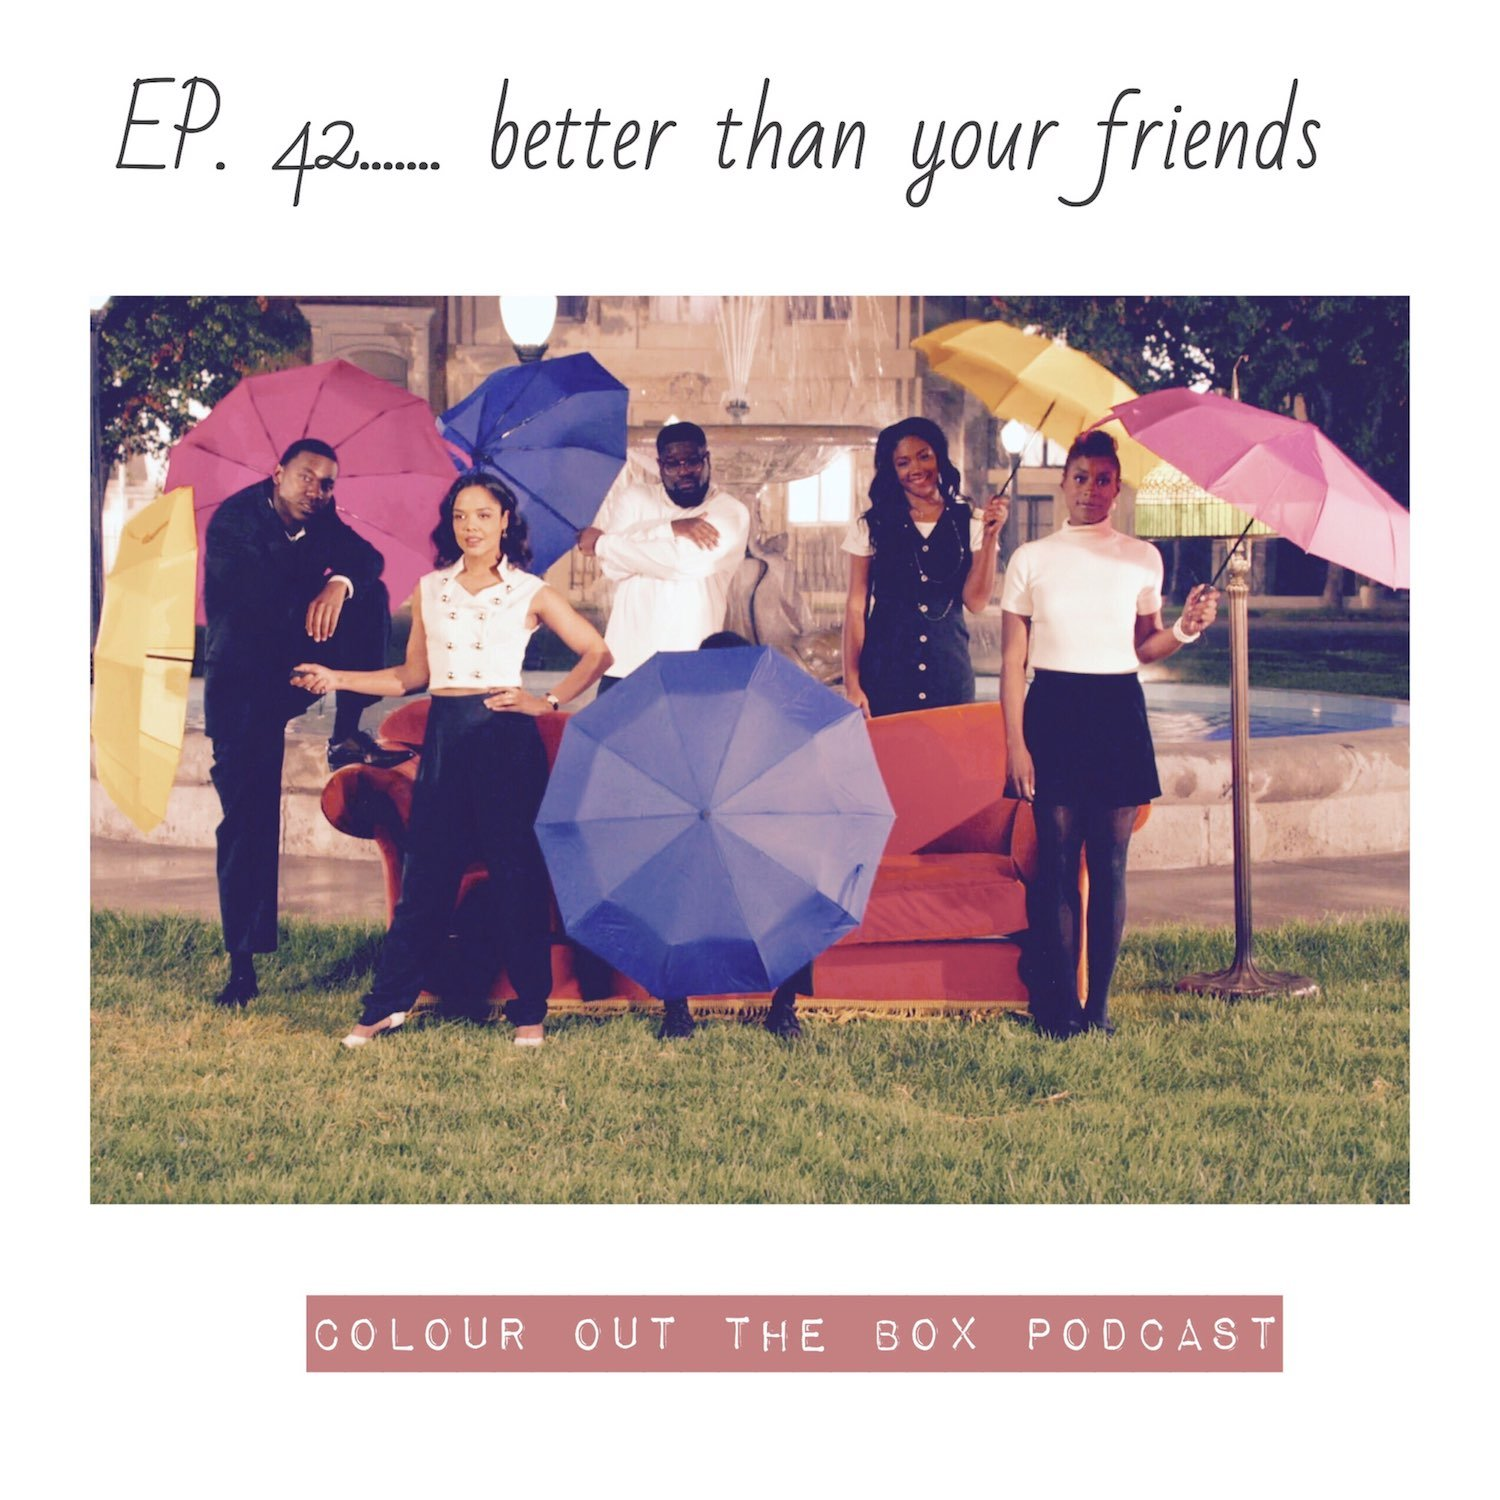 Faux friends, real friends, better than your friends: Episode 42